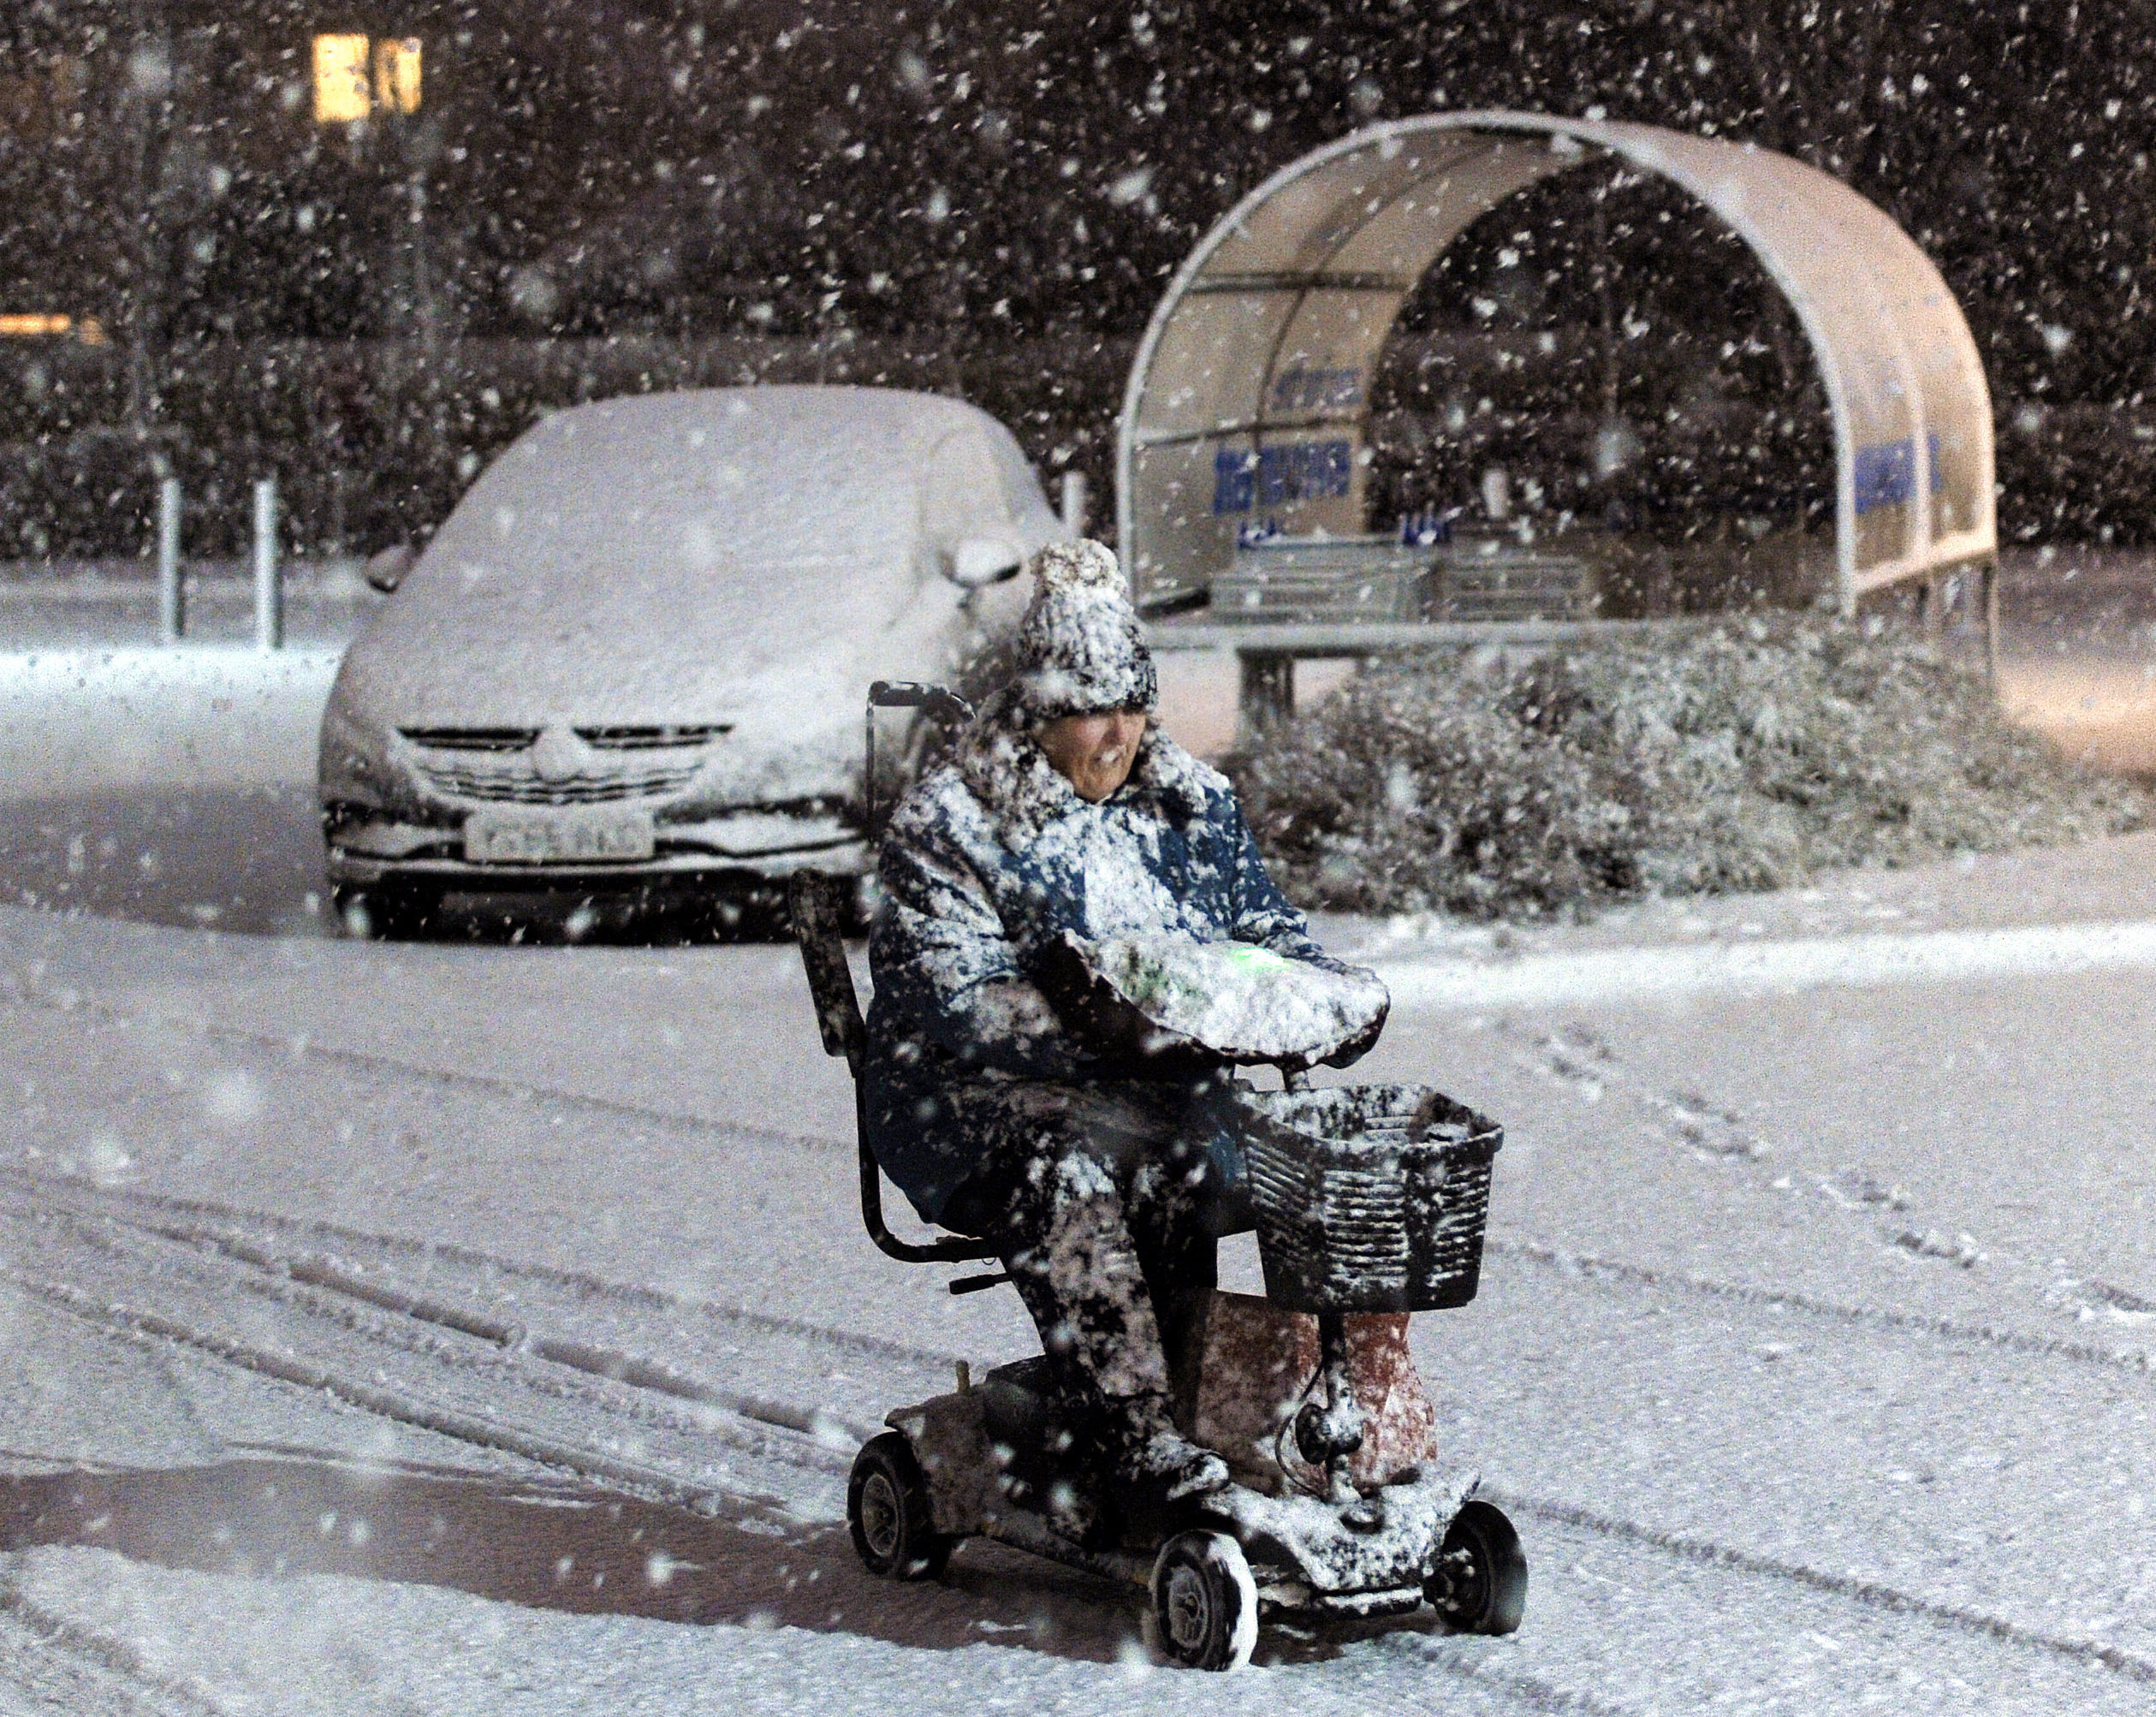 A lady makes her way through the snow on a mobility scooter in Filey on the East coast, as Scotland and the North of England were covered in a blanket of snow while the east coast was braced for a storm surge. (John Giles/PA Wire)